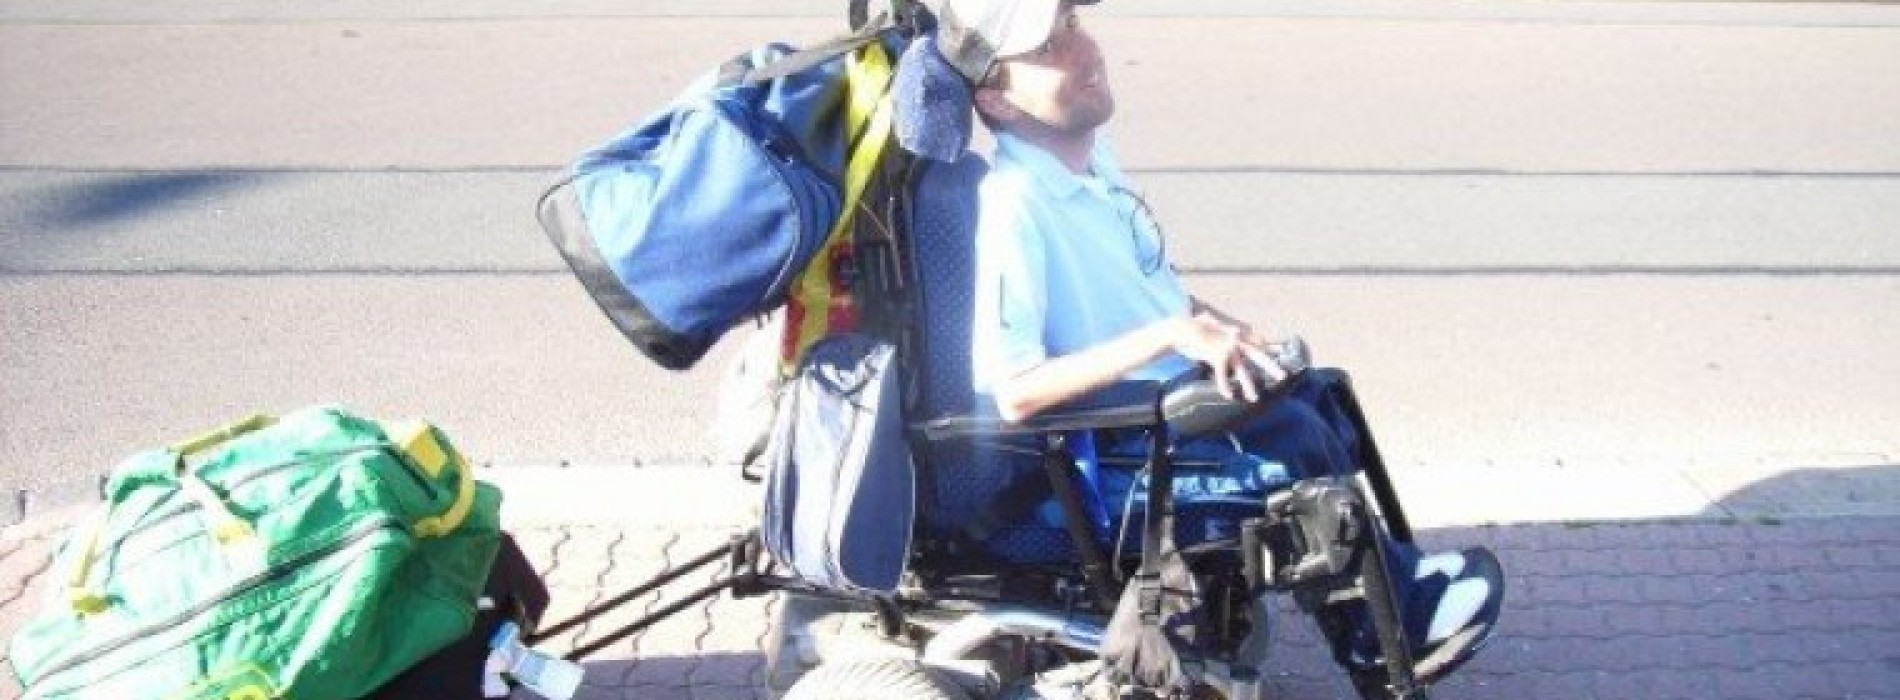 Martyn Sibley: Overcoming my disability to volunteer abroad